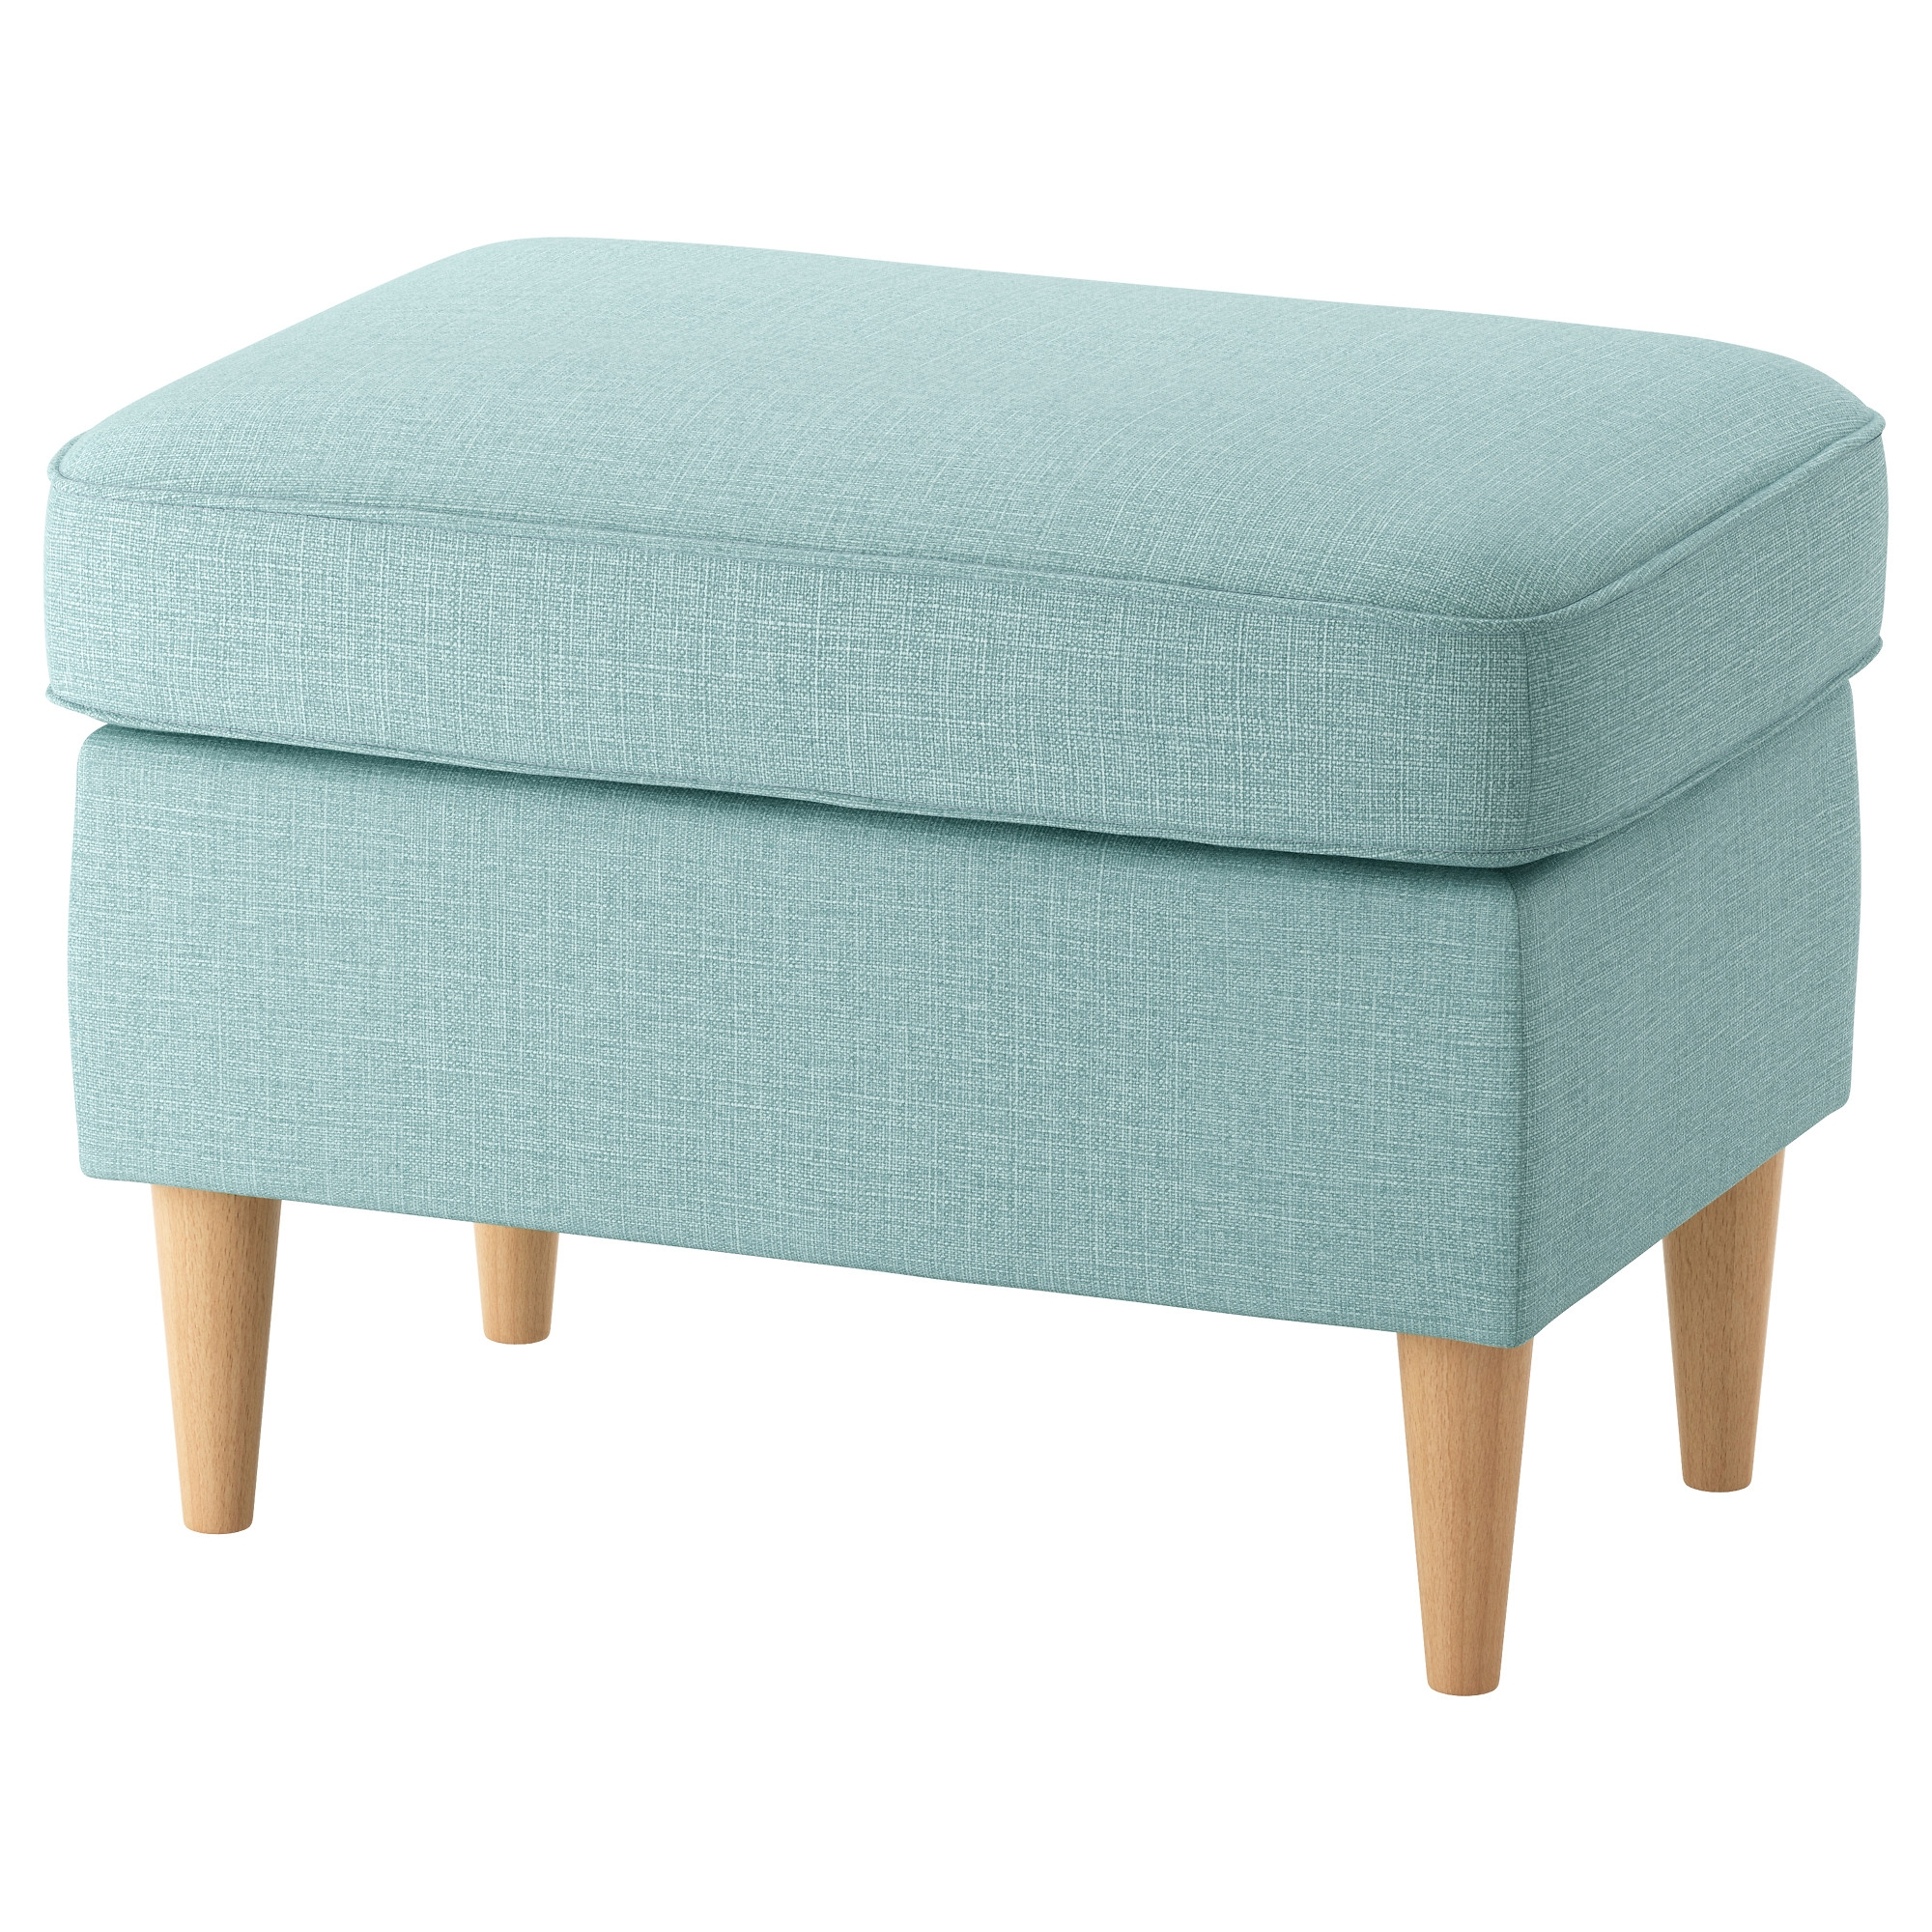 Strandmon Footstool Skiftebo Light Turquoise Ikea Within Ikea Footstools And Pouffes (Image 14 of 15)